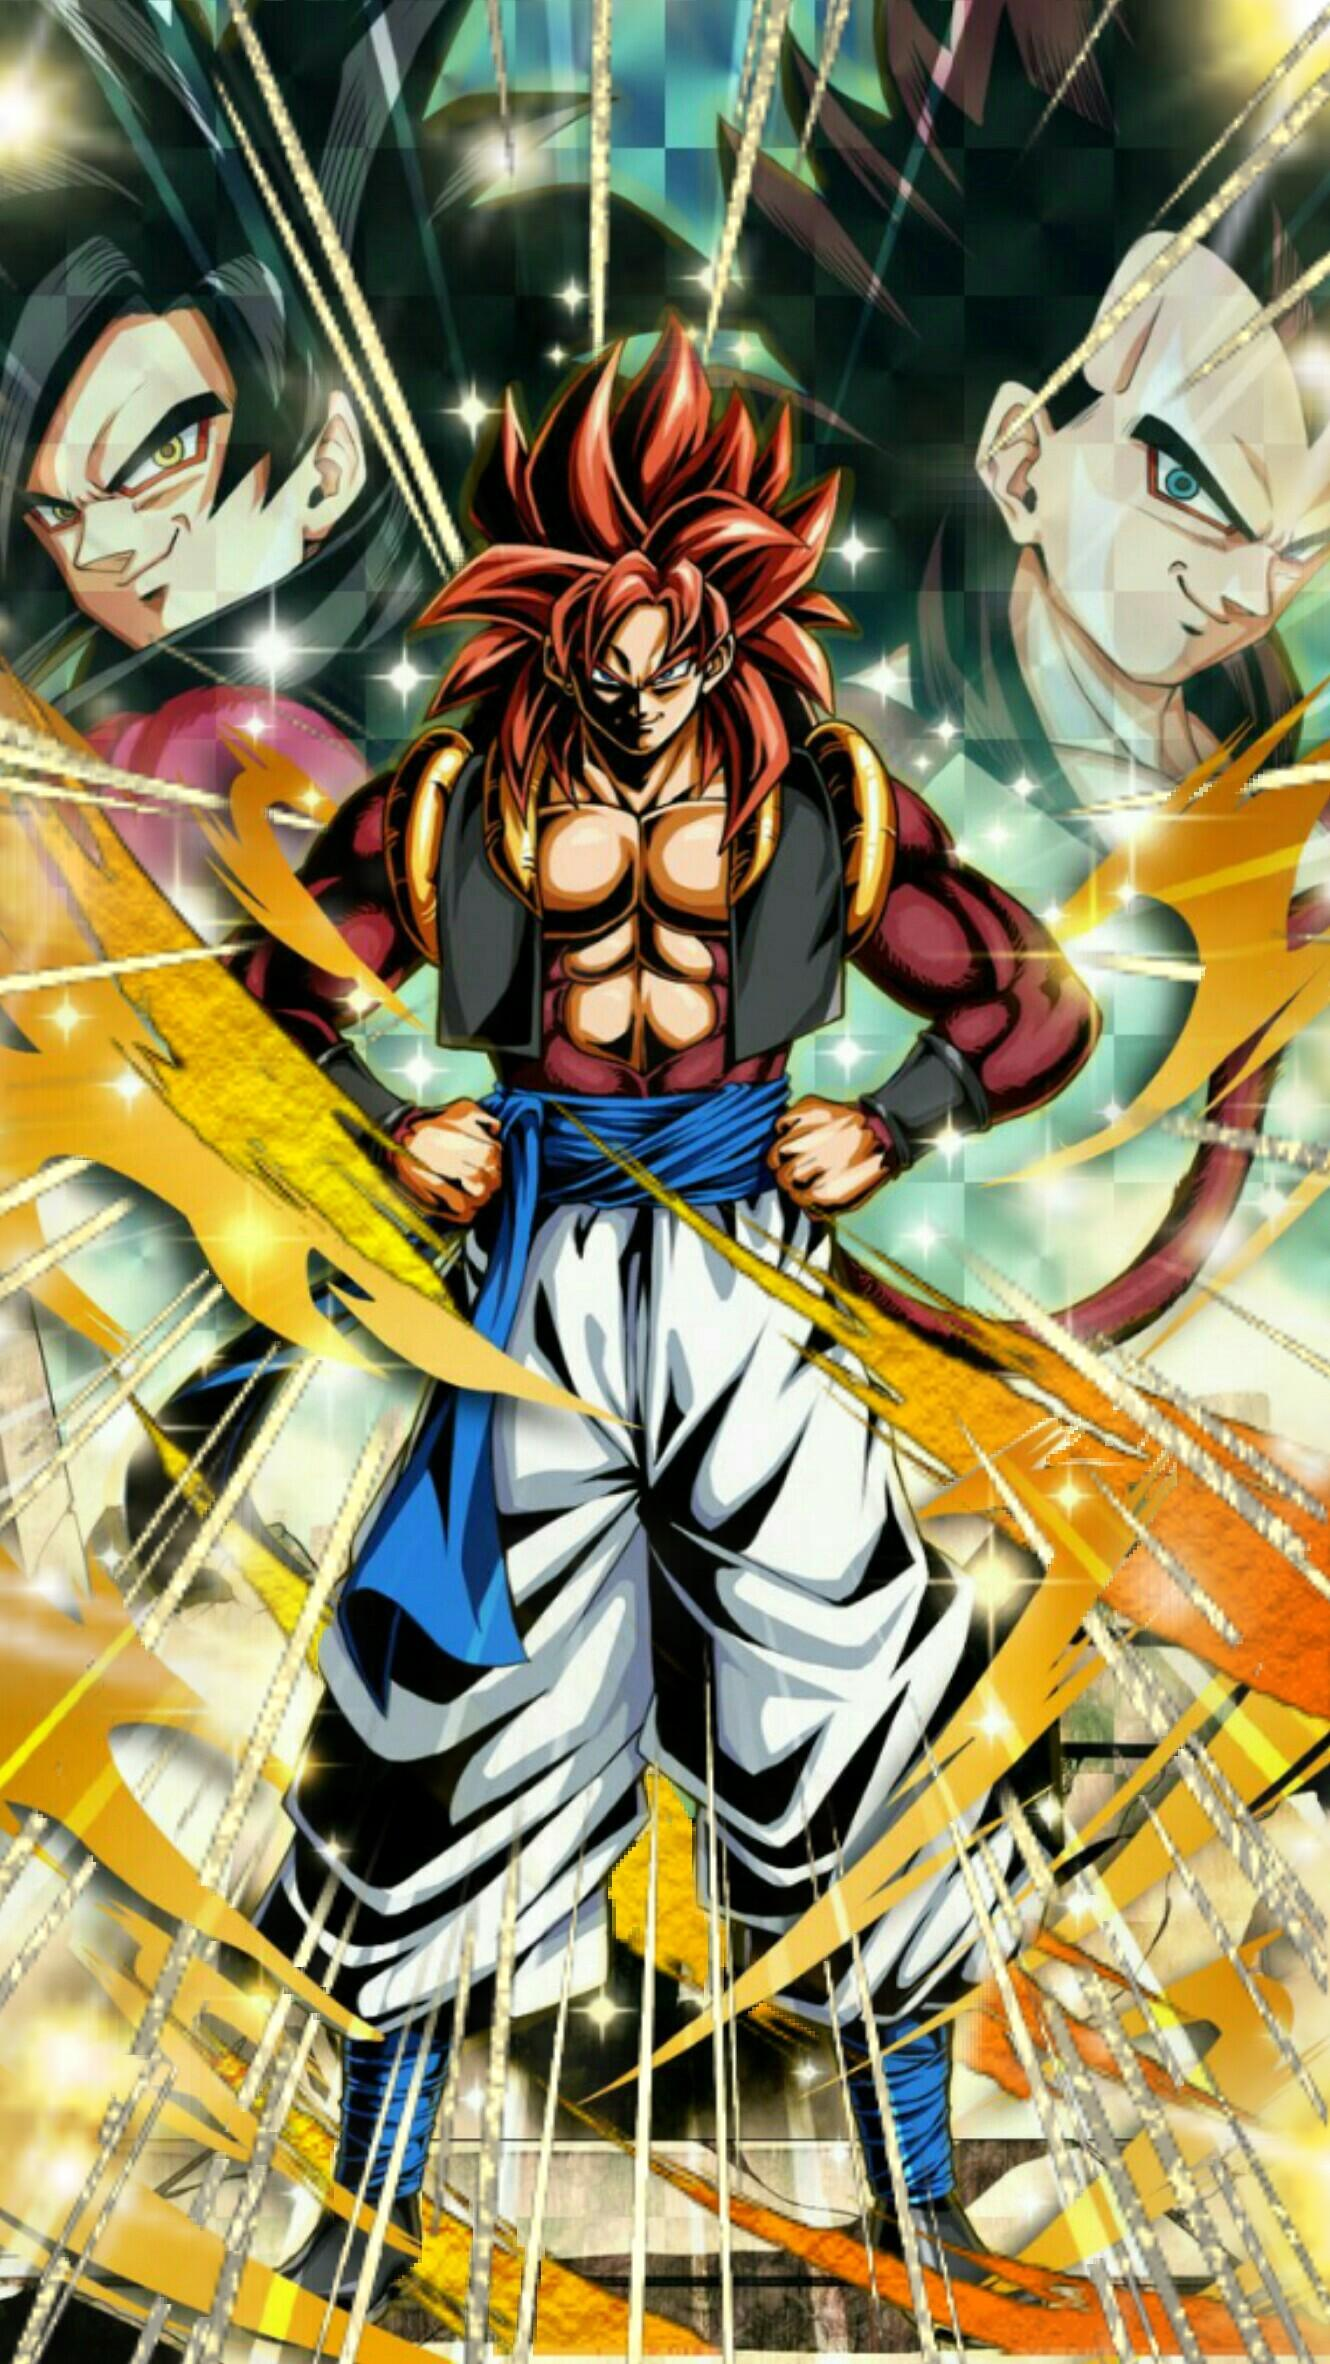 Free download 74 Gogeta Ss4 Wallpapers